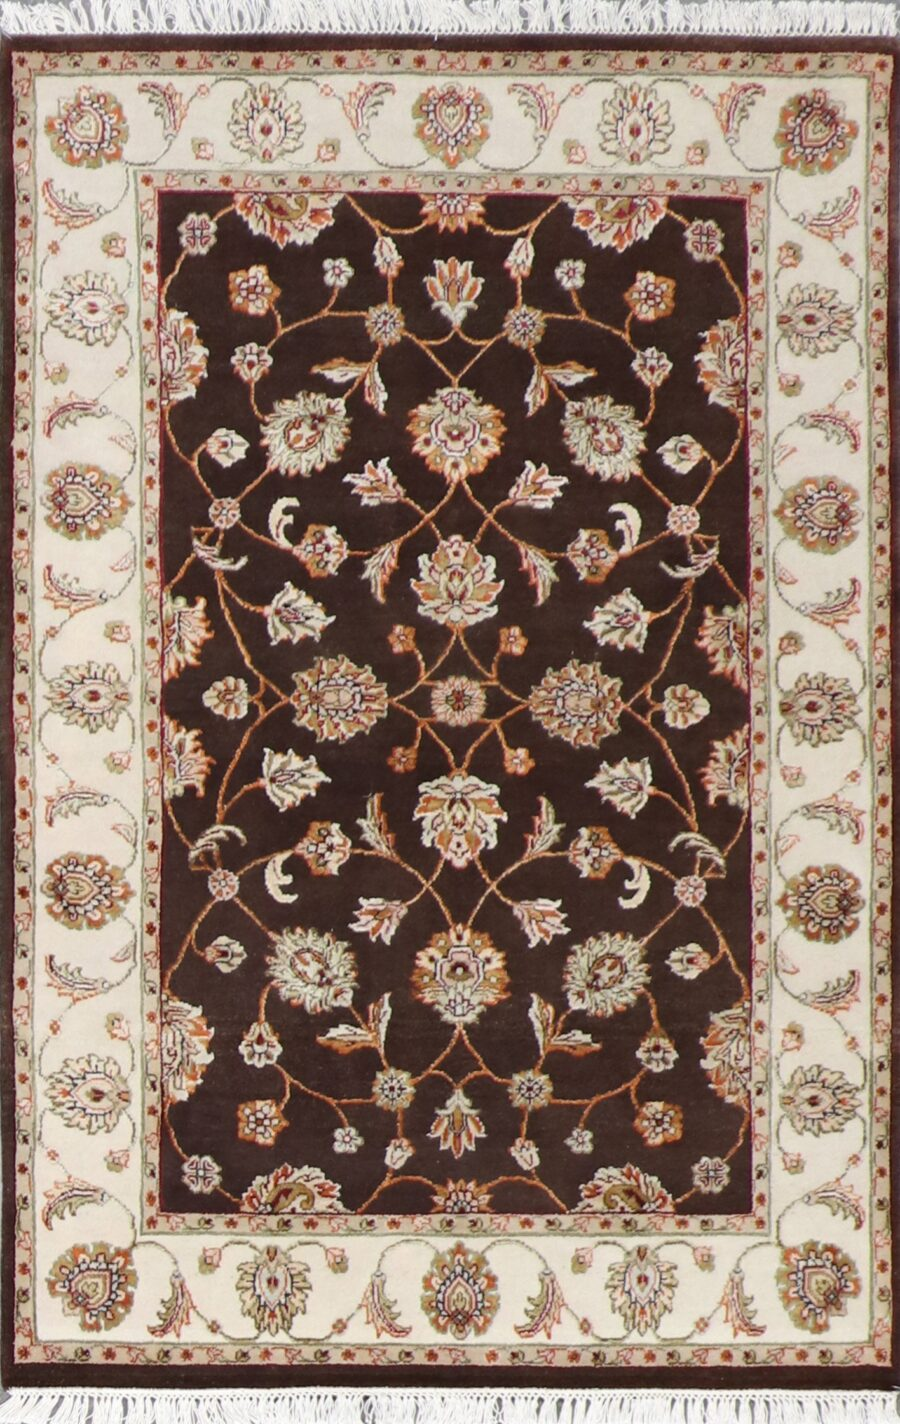 """4'x6'2"""" Decorative Brown Wool & Silk Hand-Knotted Rug - Direct Rug Import 